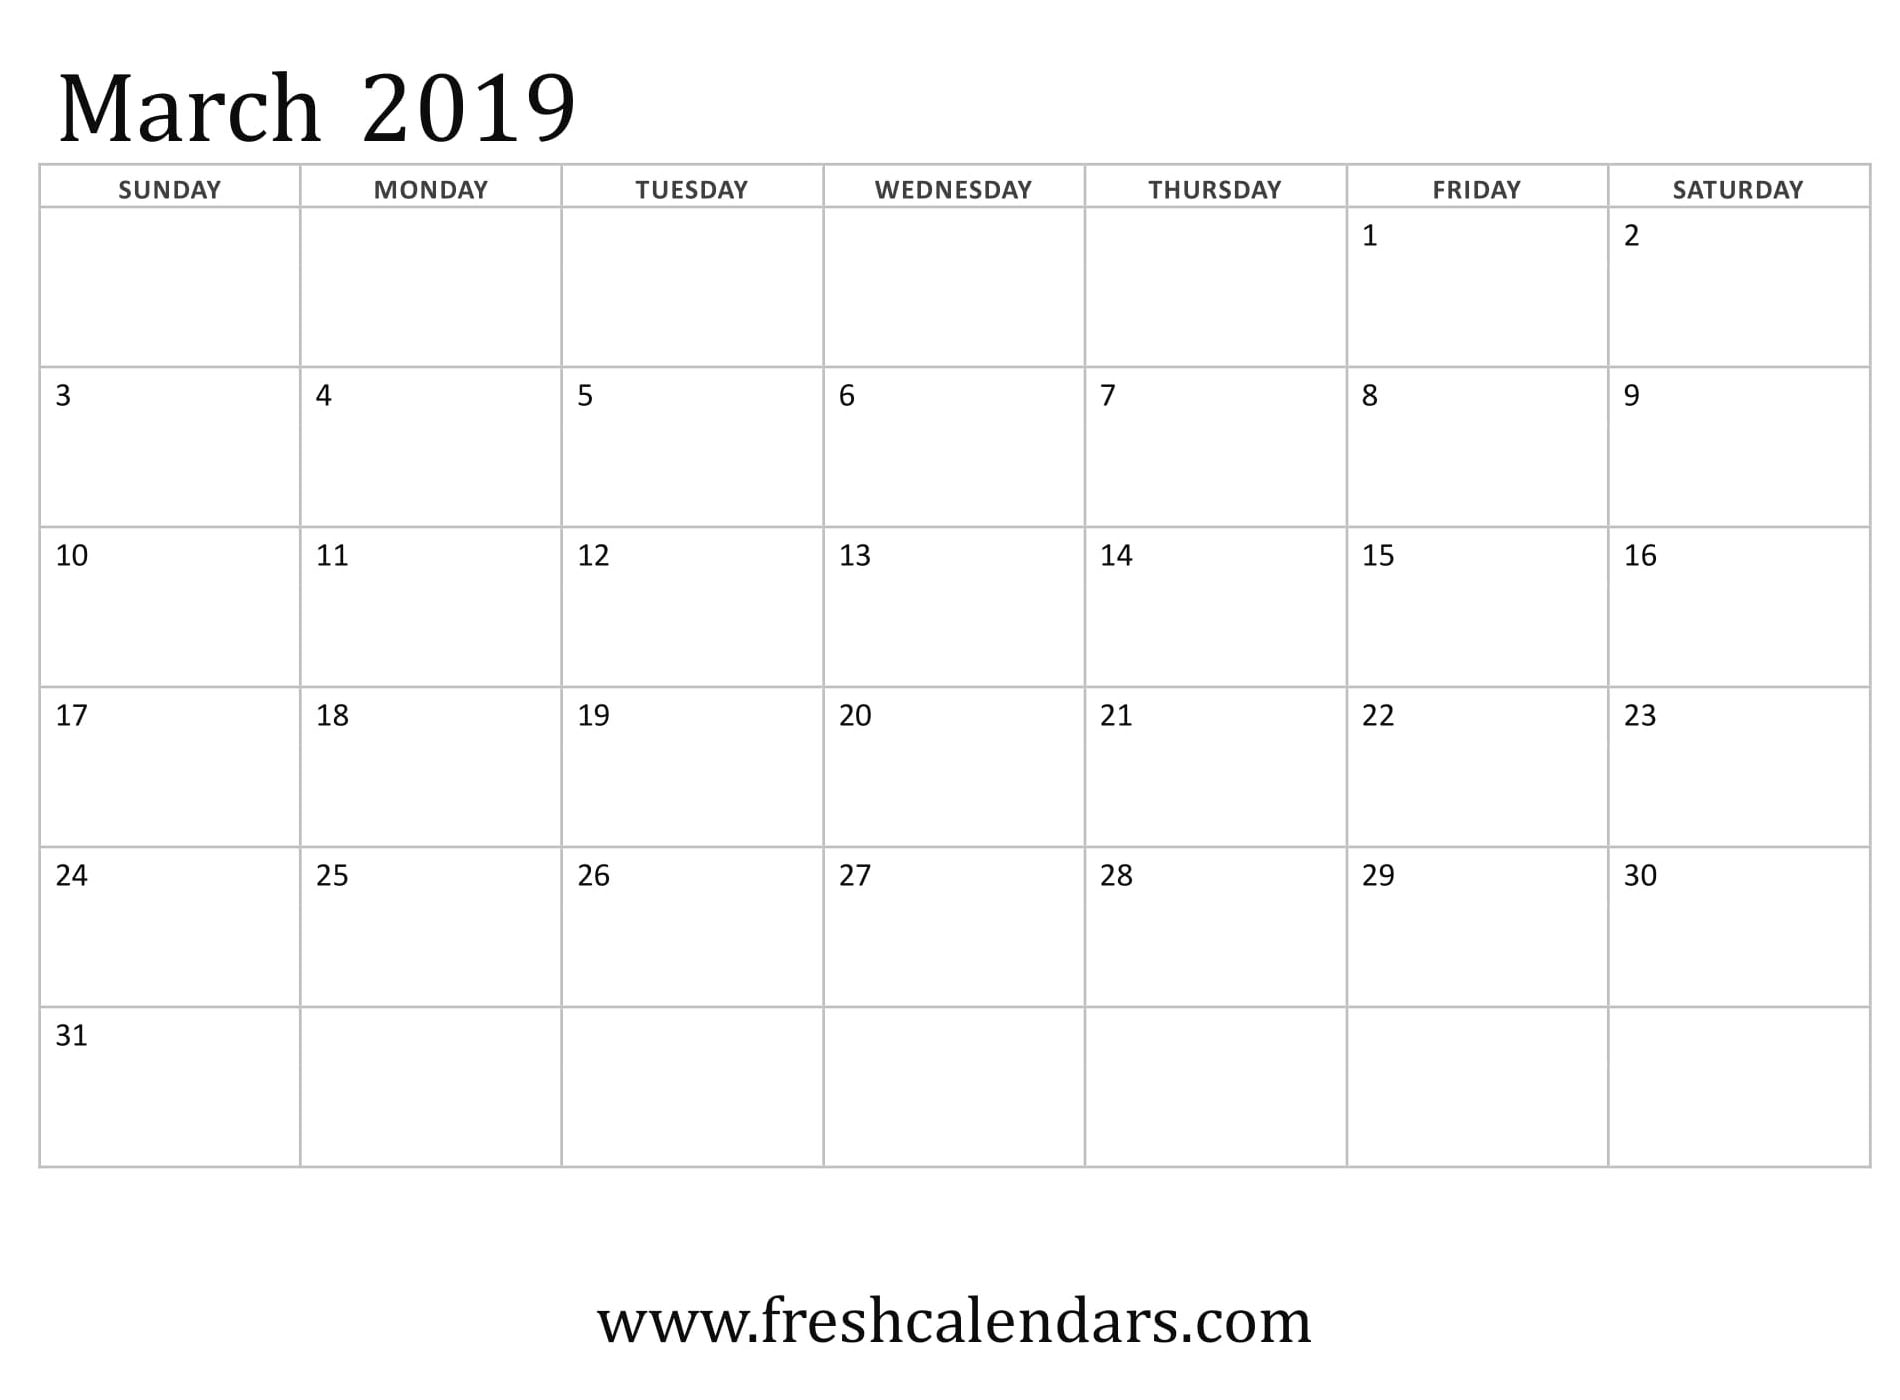 Blank Calendar You Can Type Into : Blank march calendar printable templates